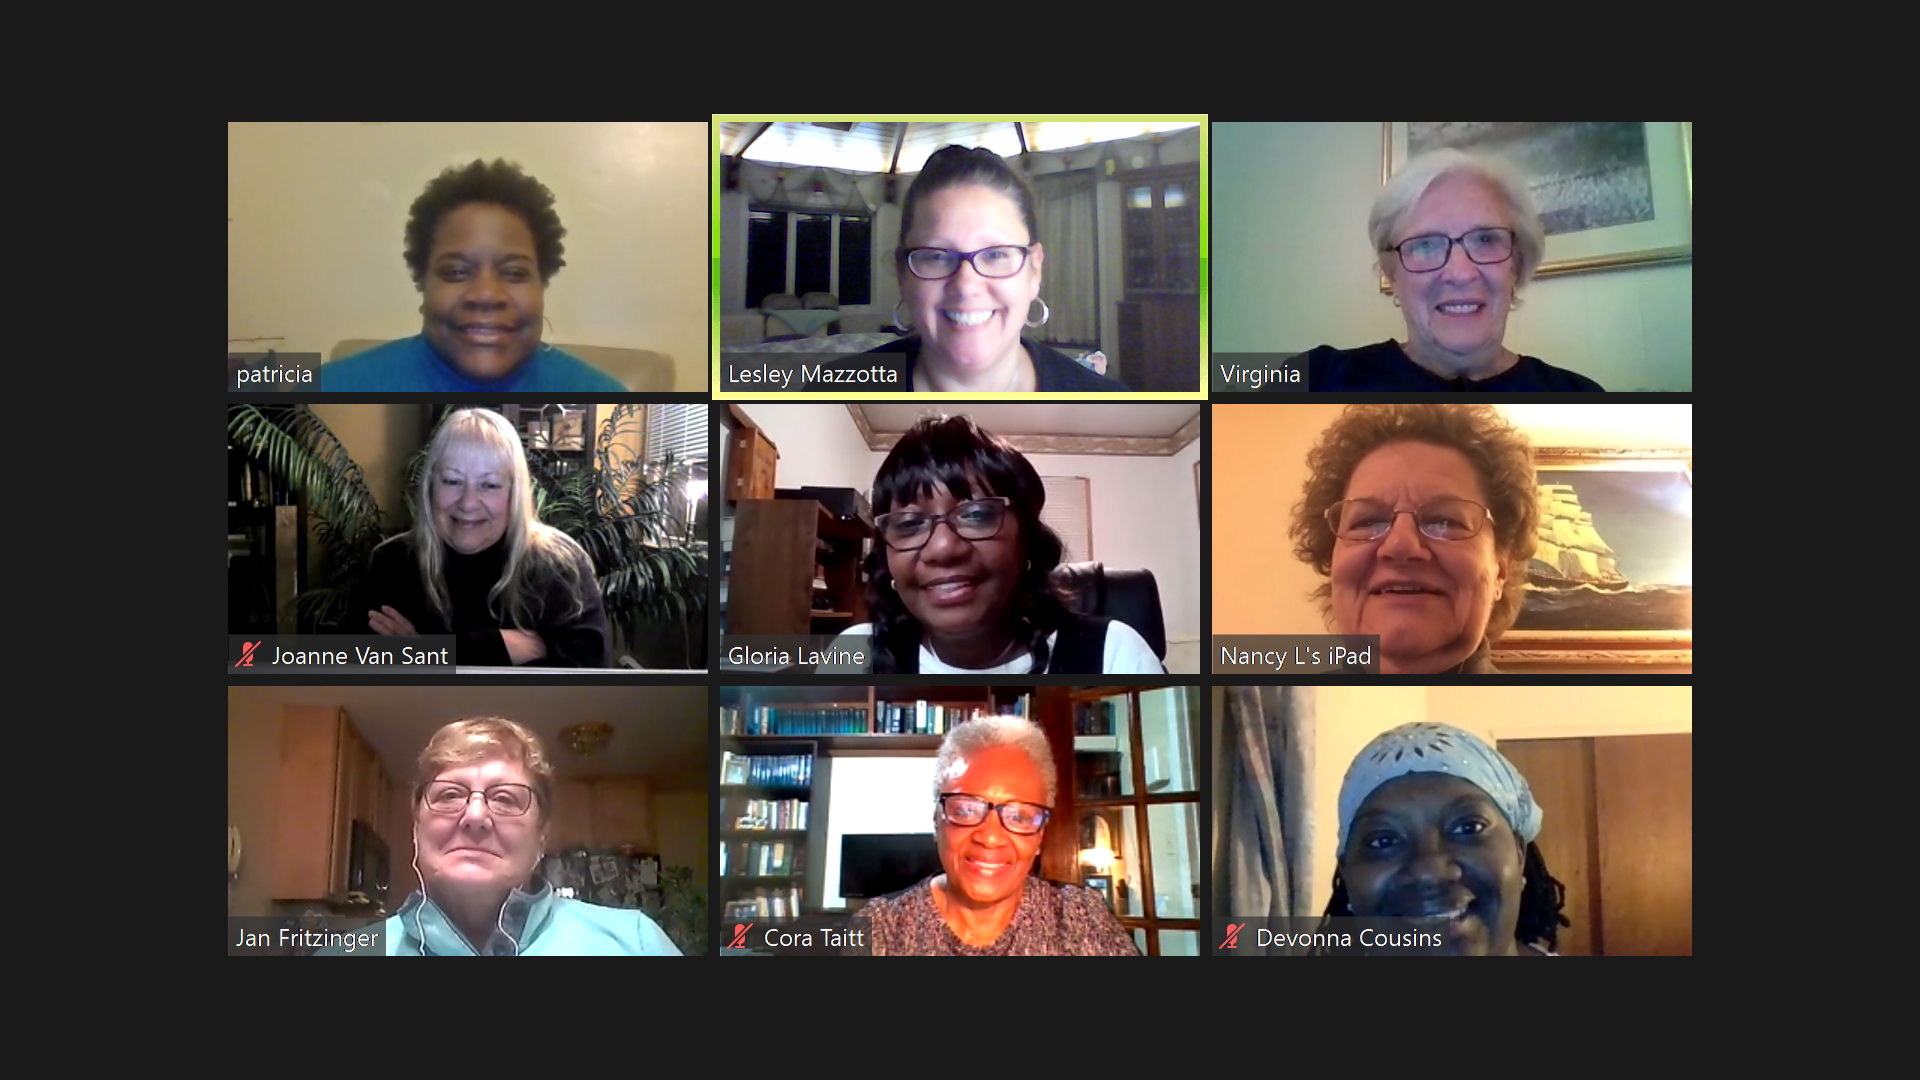 A group of women have been meeting virtually for months, finding hope and support as they journey together.